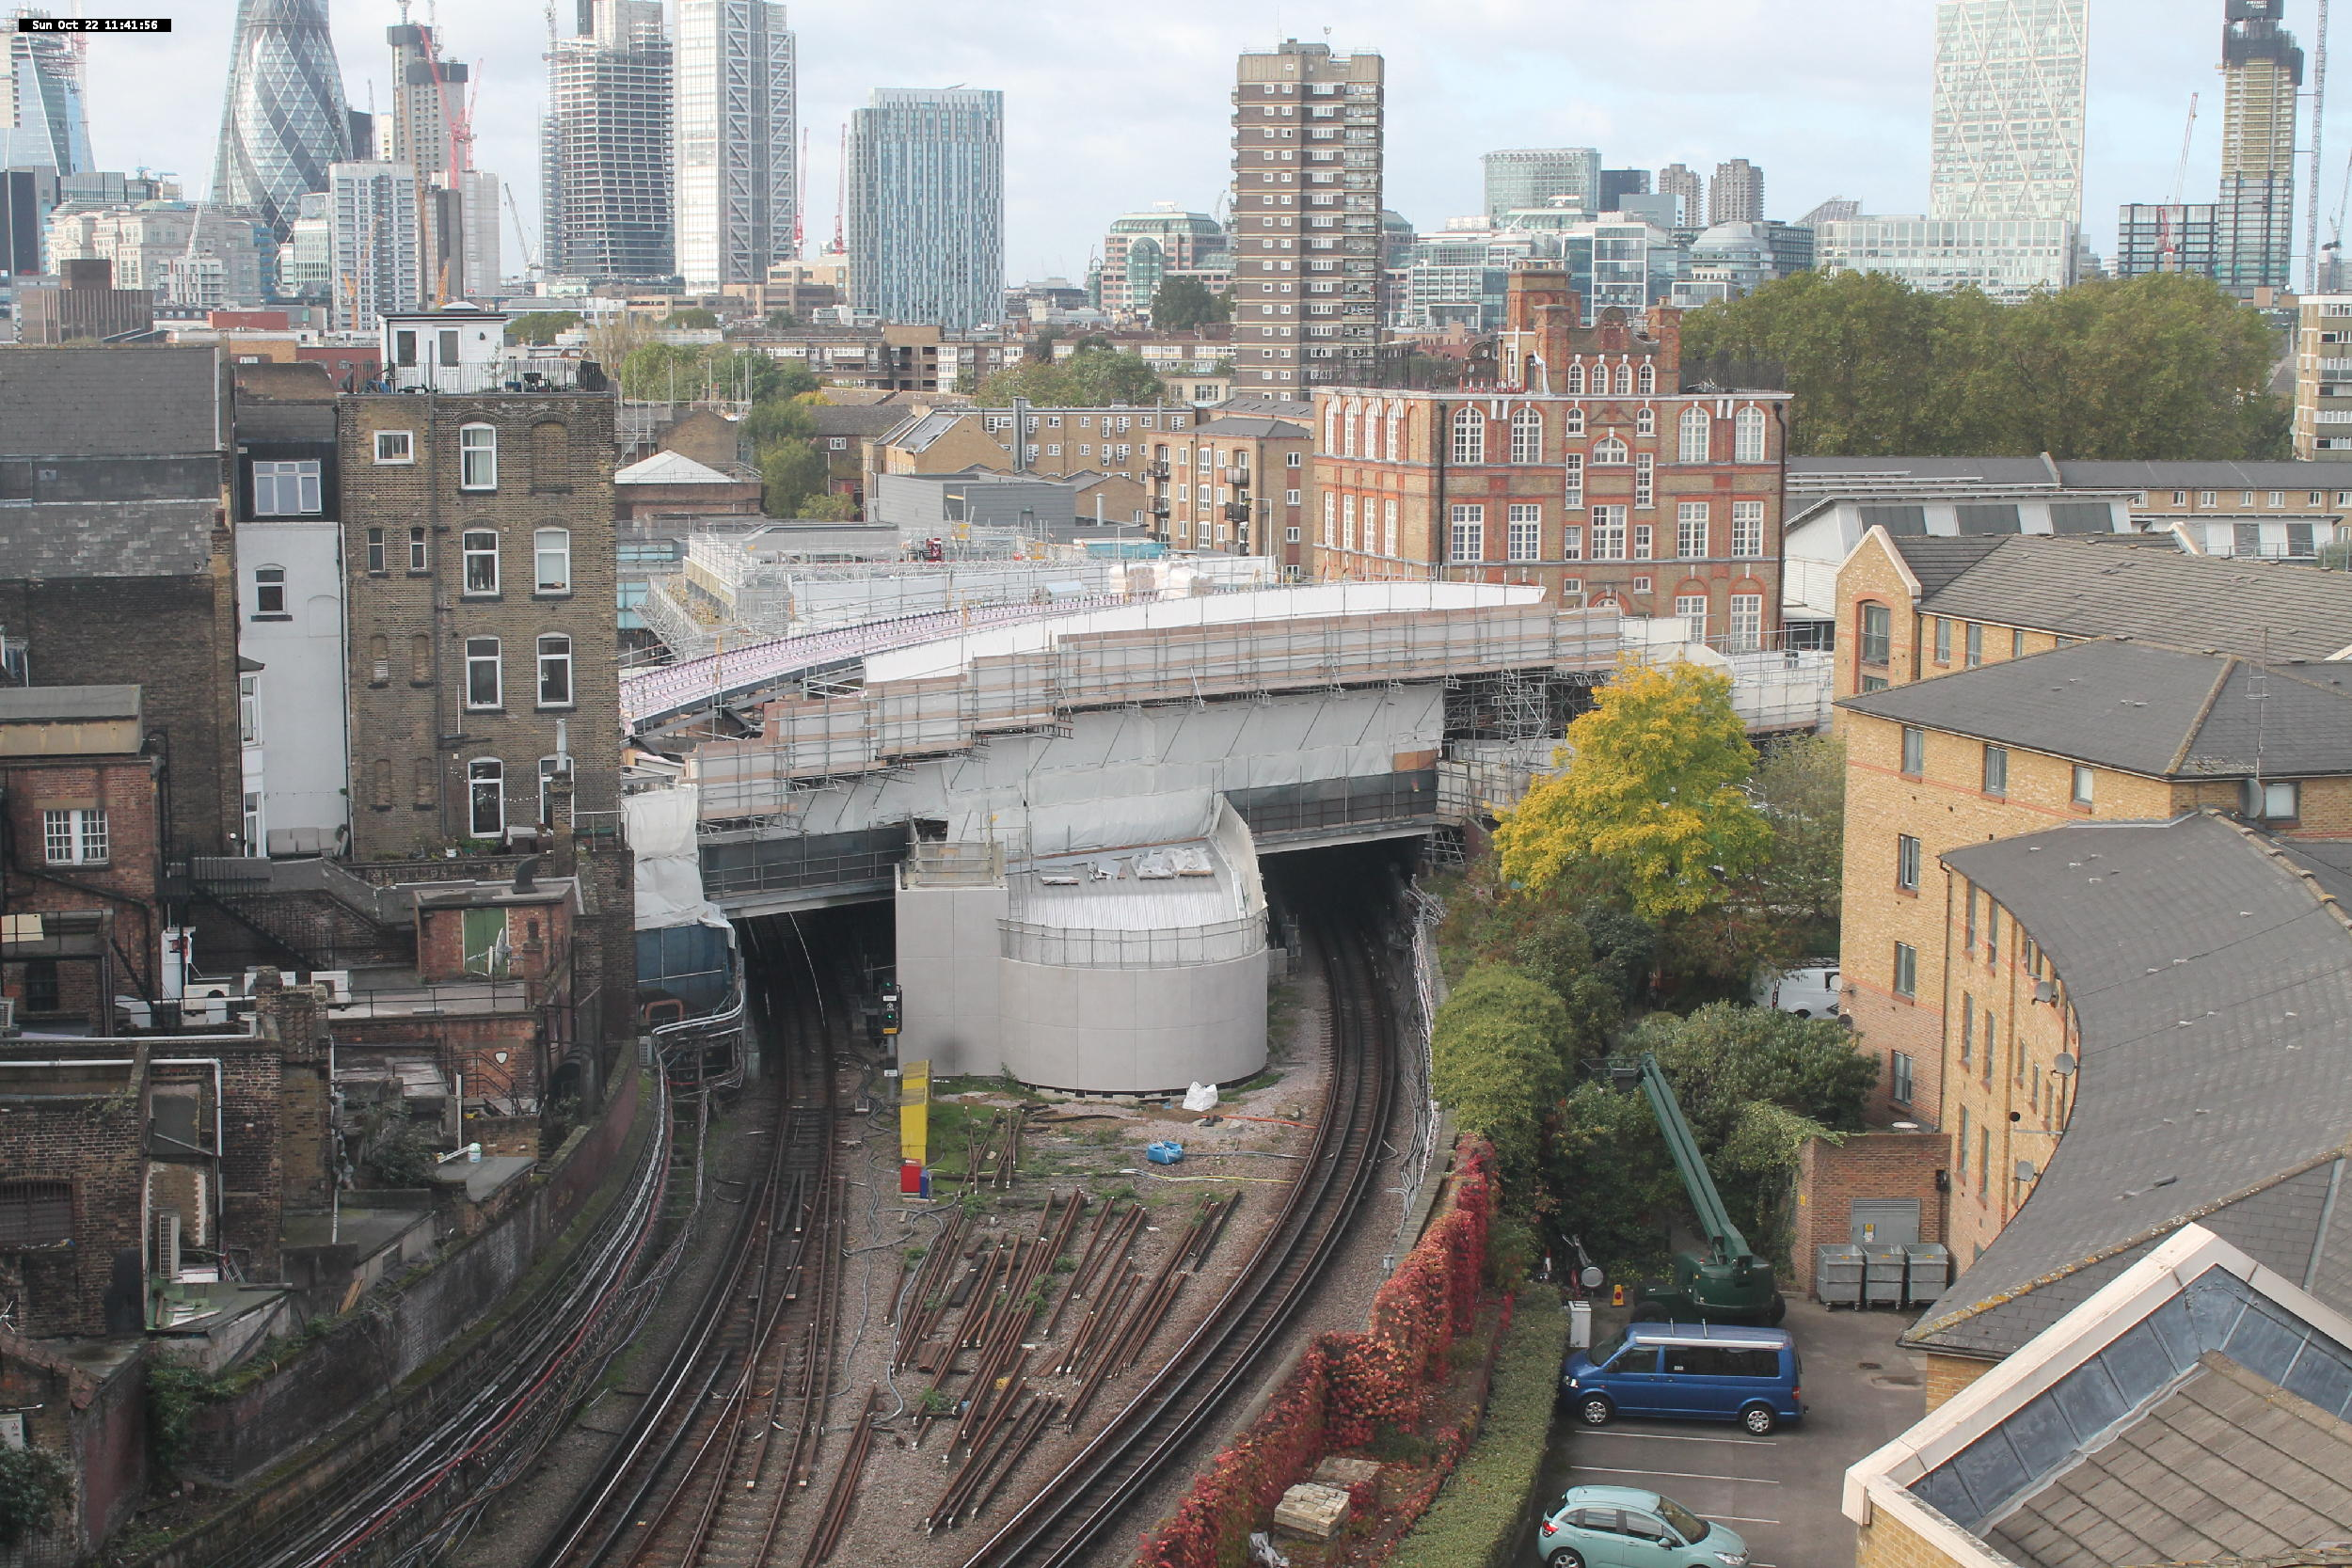 Current works at Whitechapel Station